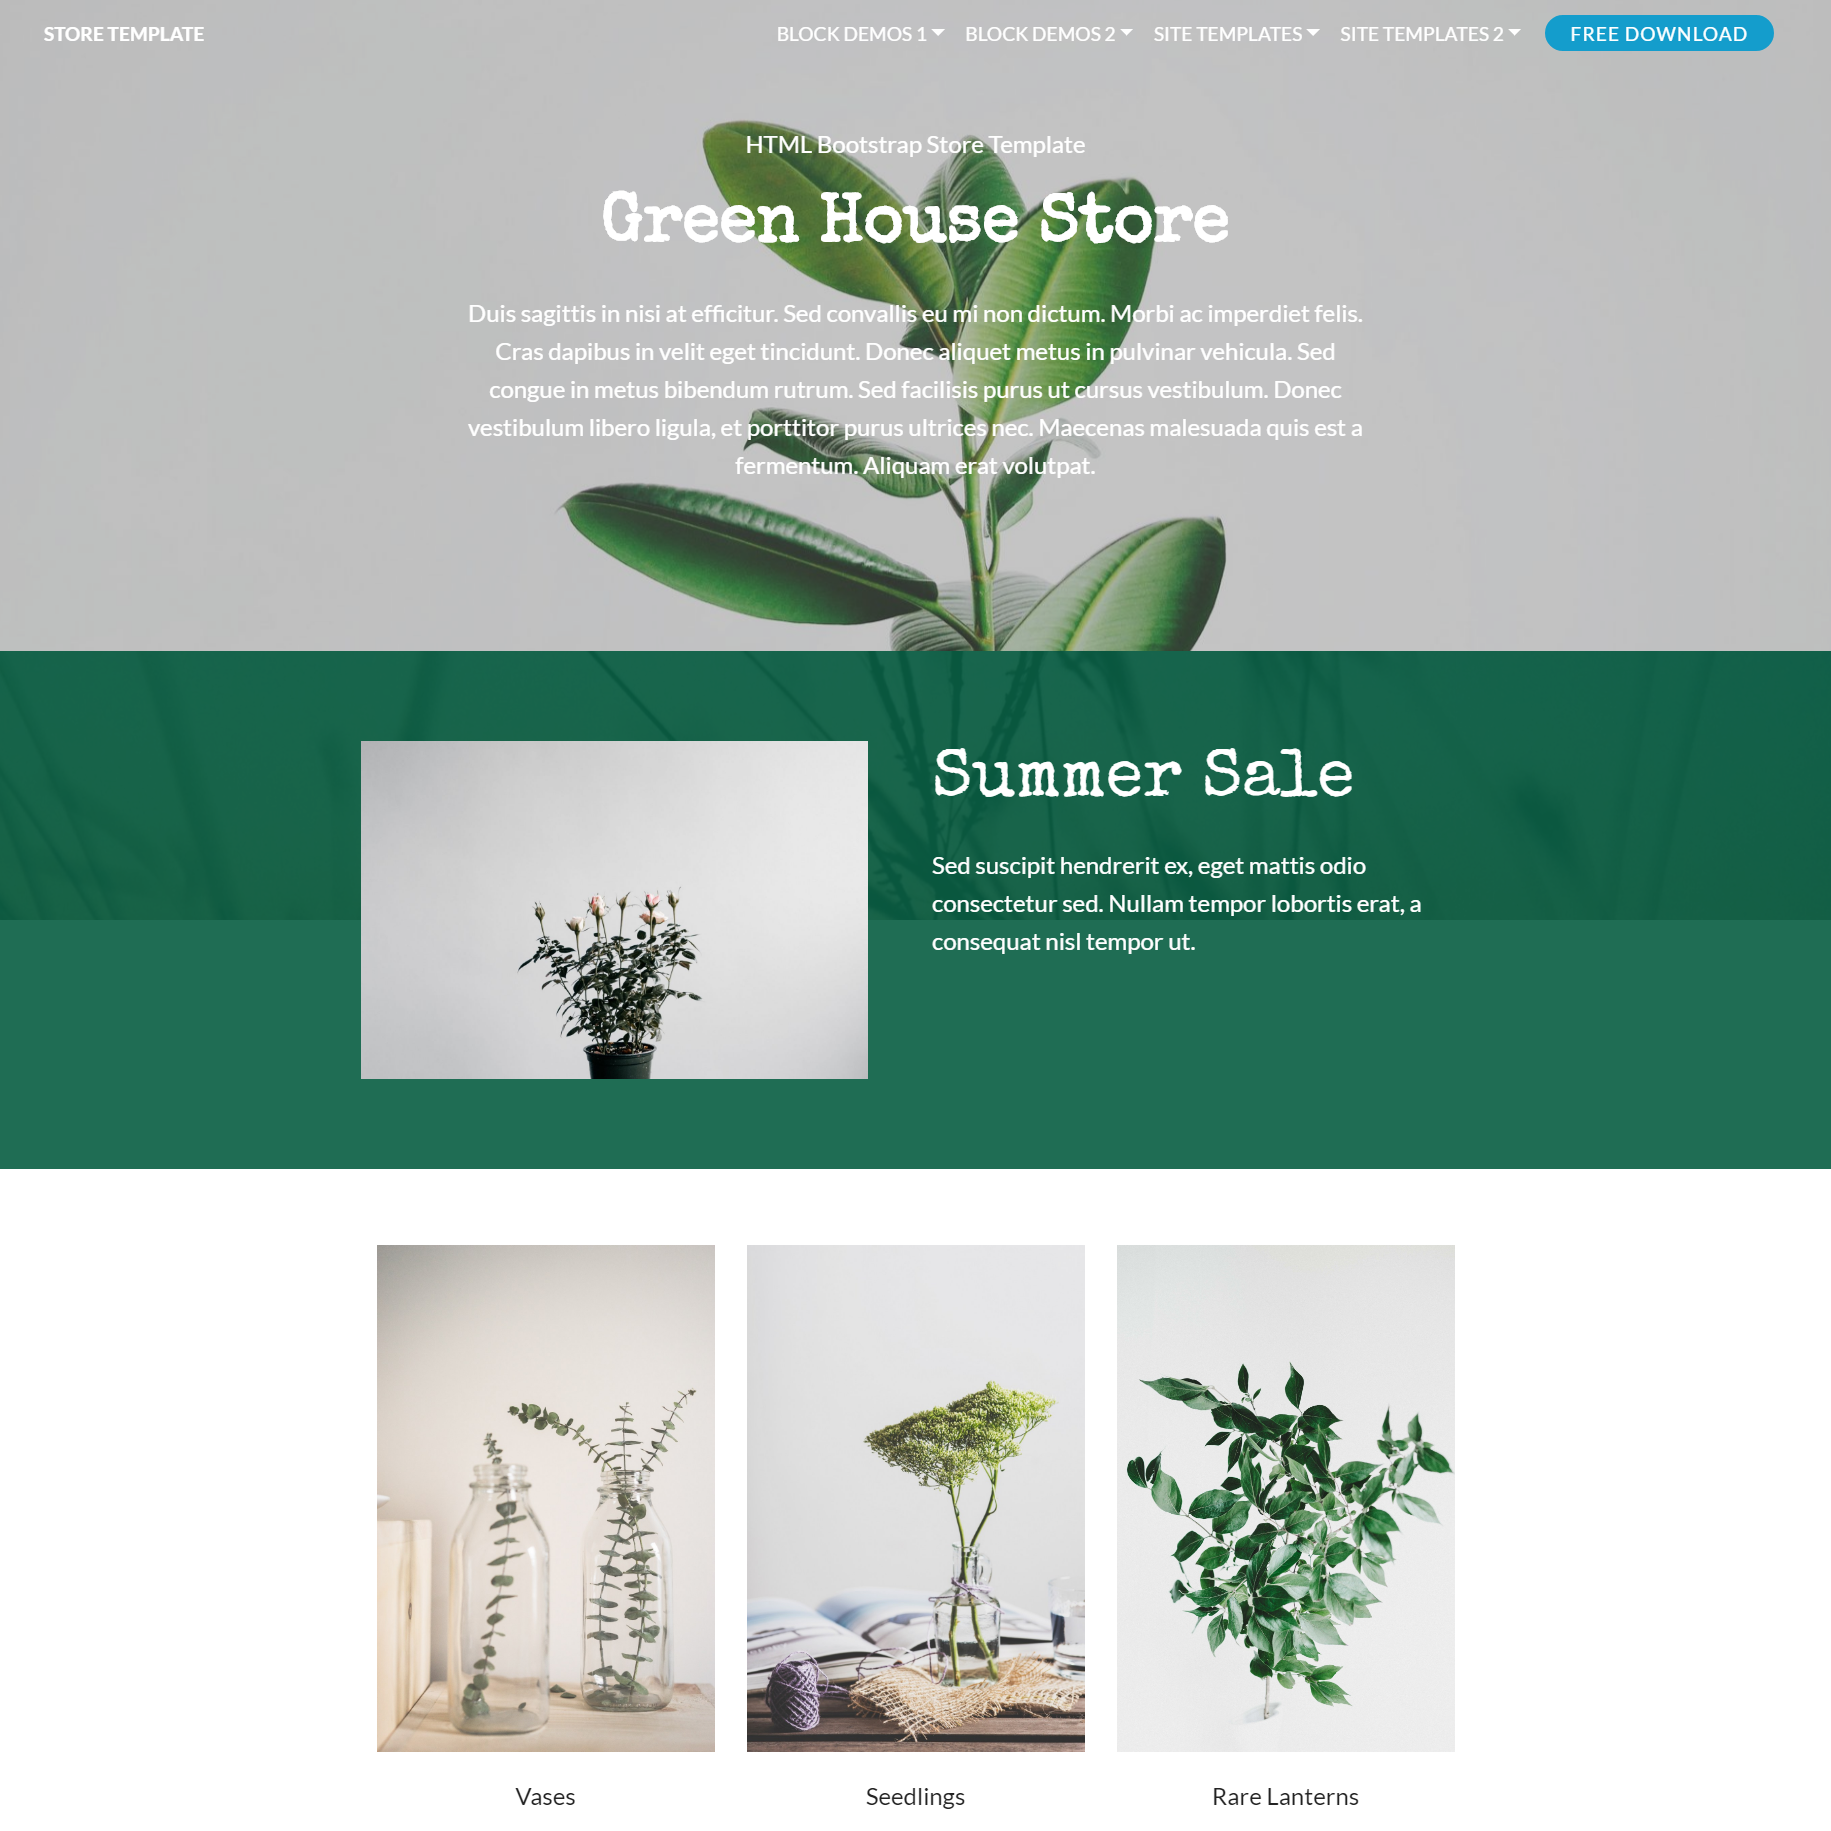 HTML5 Bootstrap Store Themes